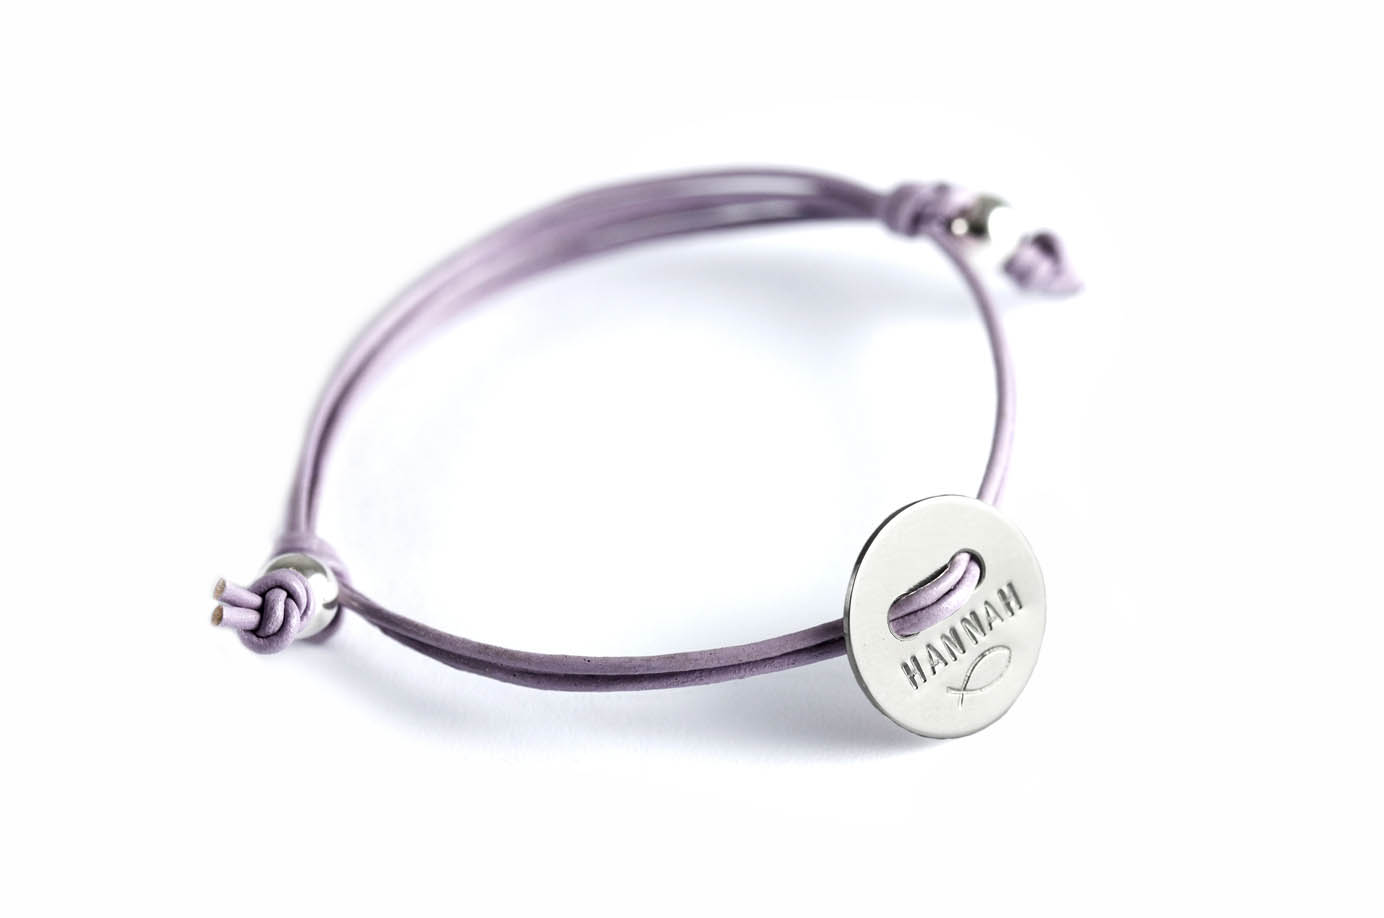 FamilyCharm Button - Namens- Geburts- Spruchband